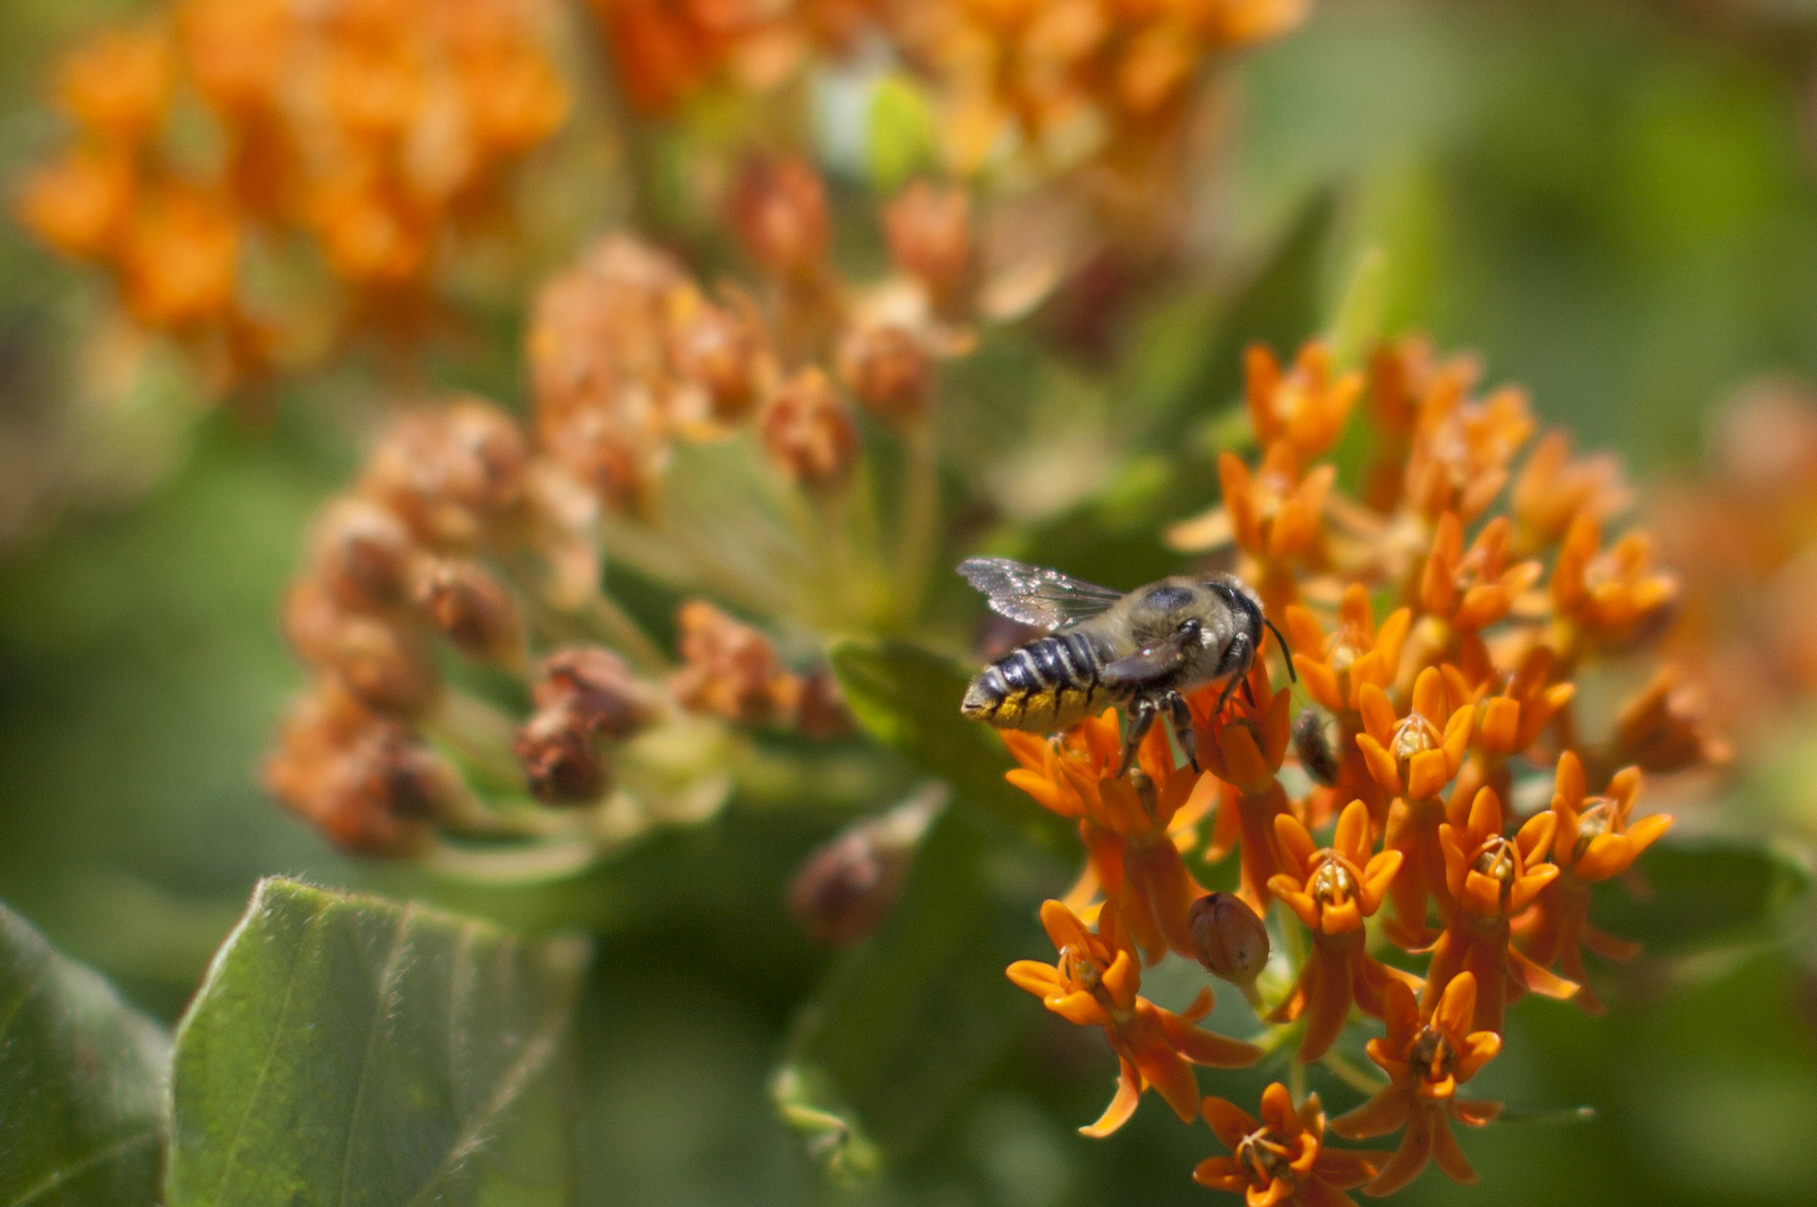 Leafcutter bee on Butterfly weed